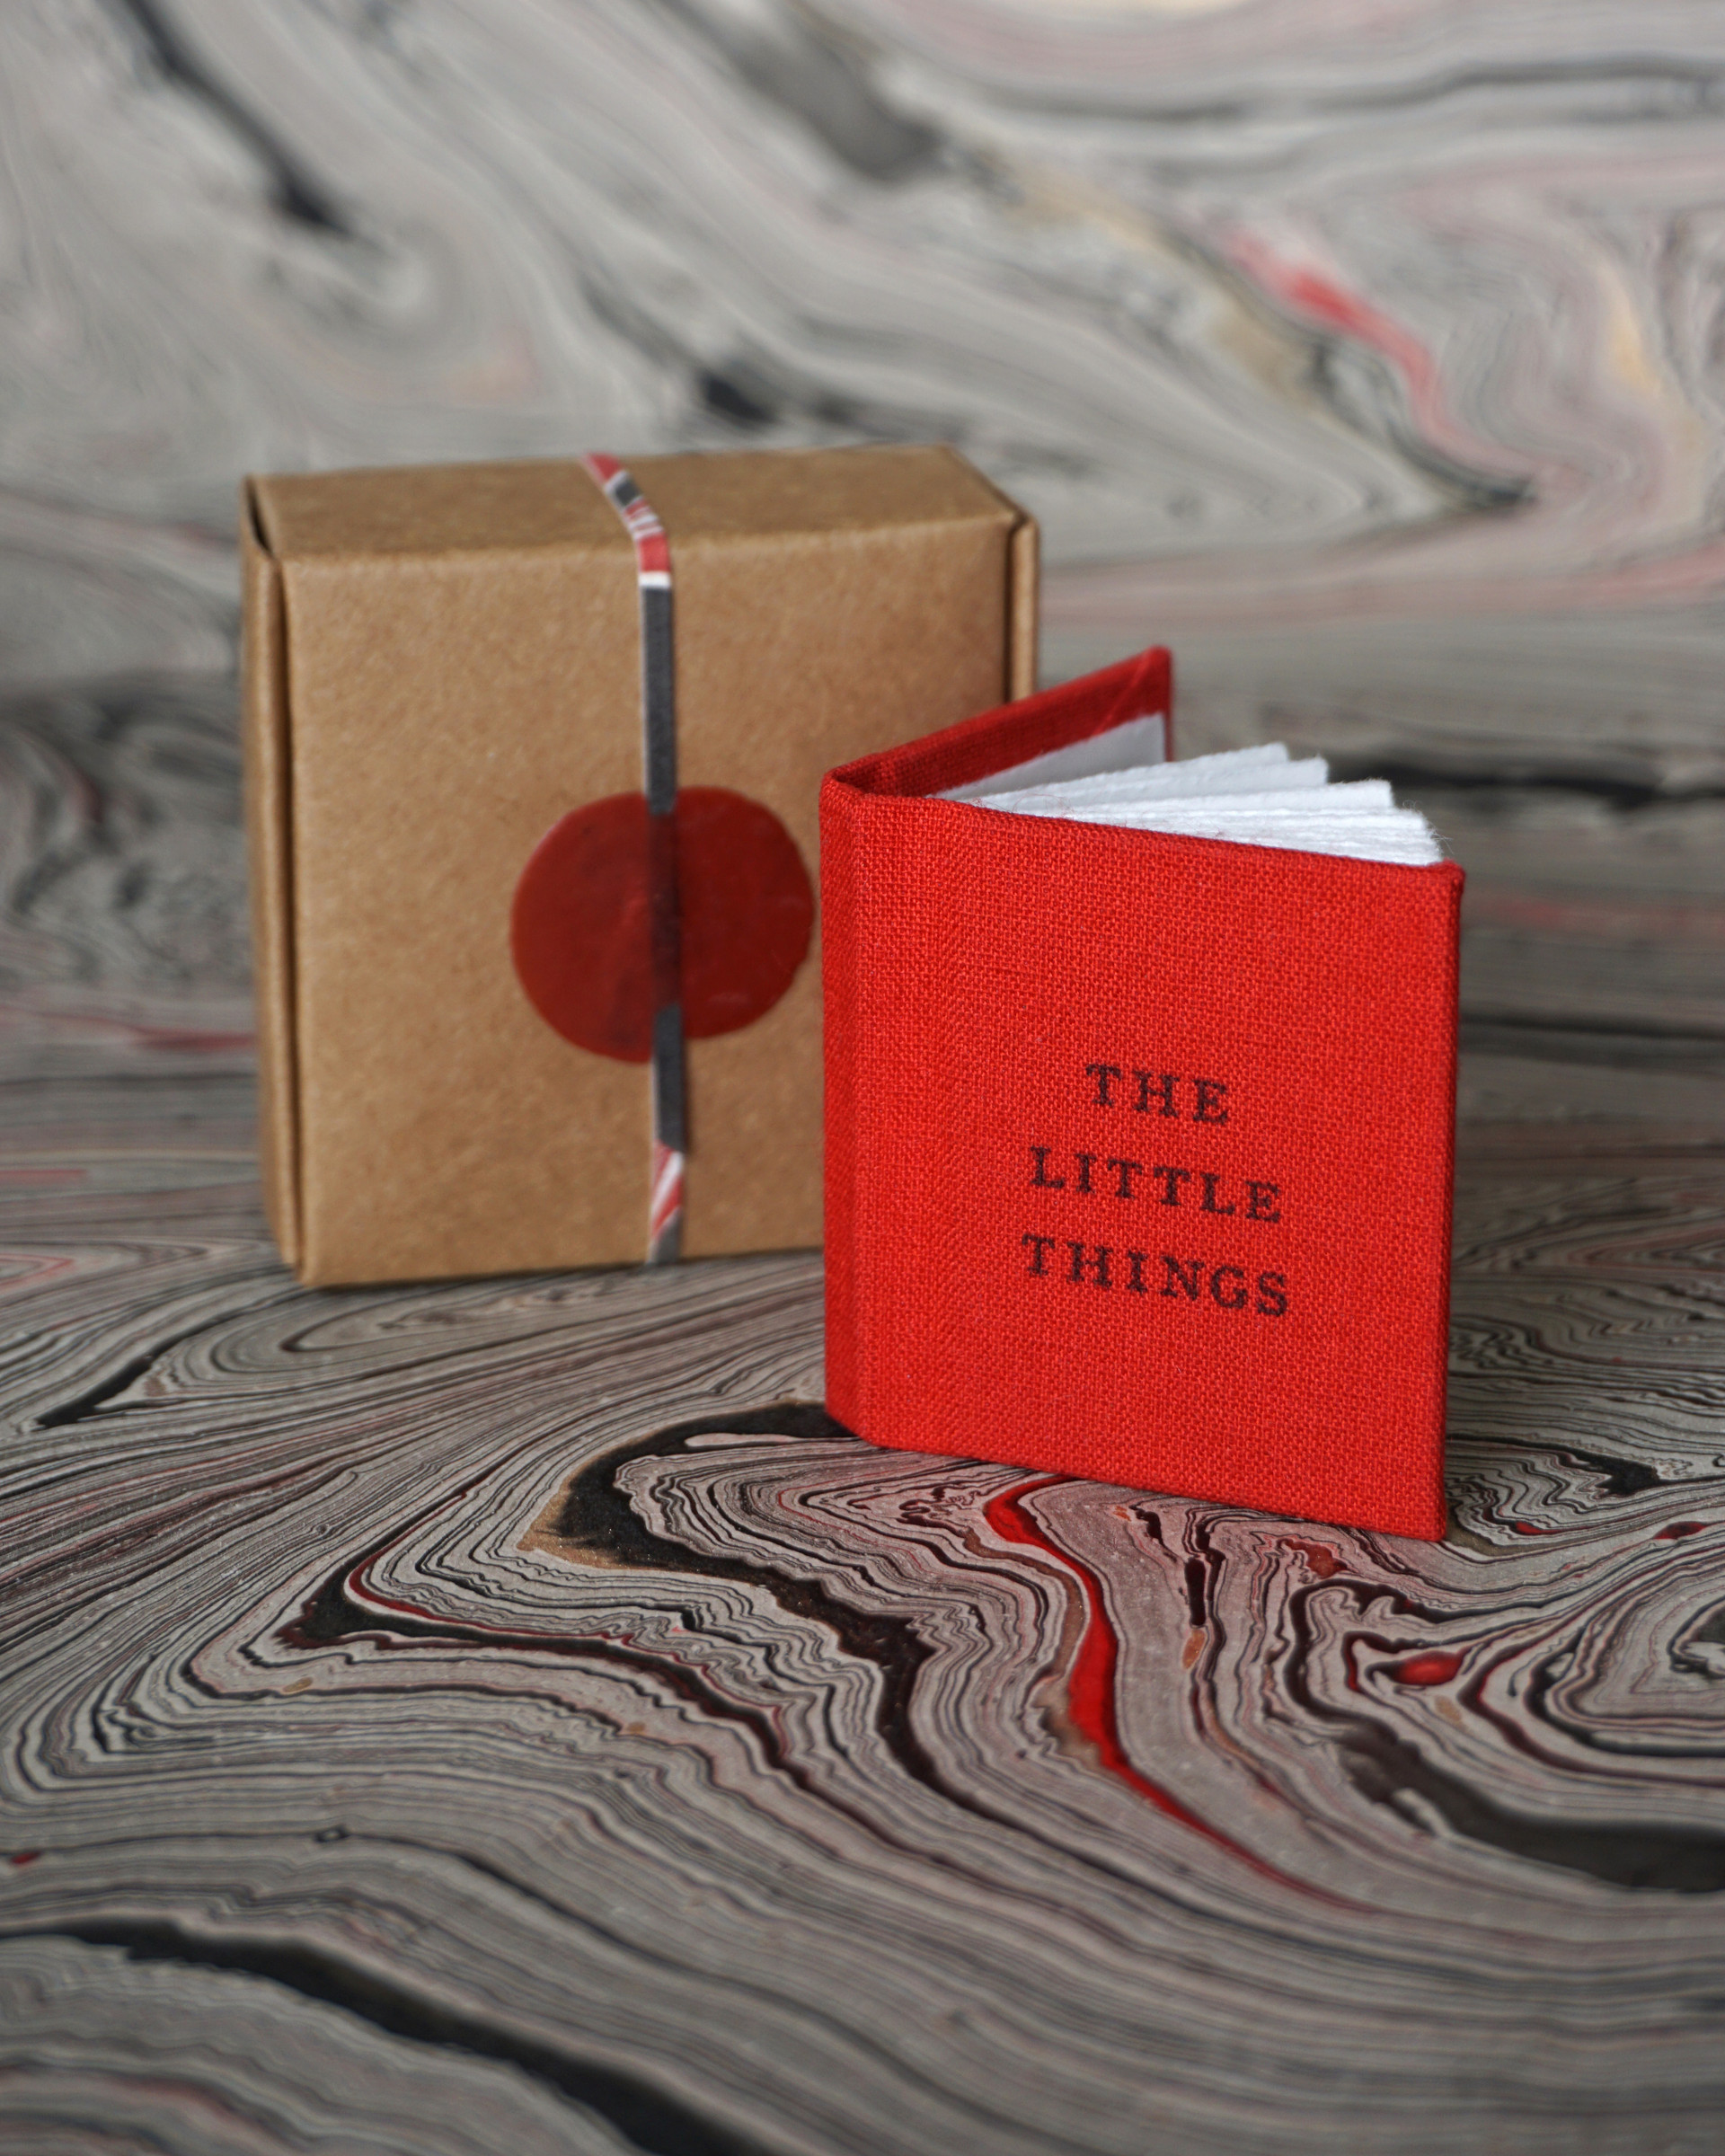 The Little Things Packaging